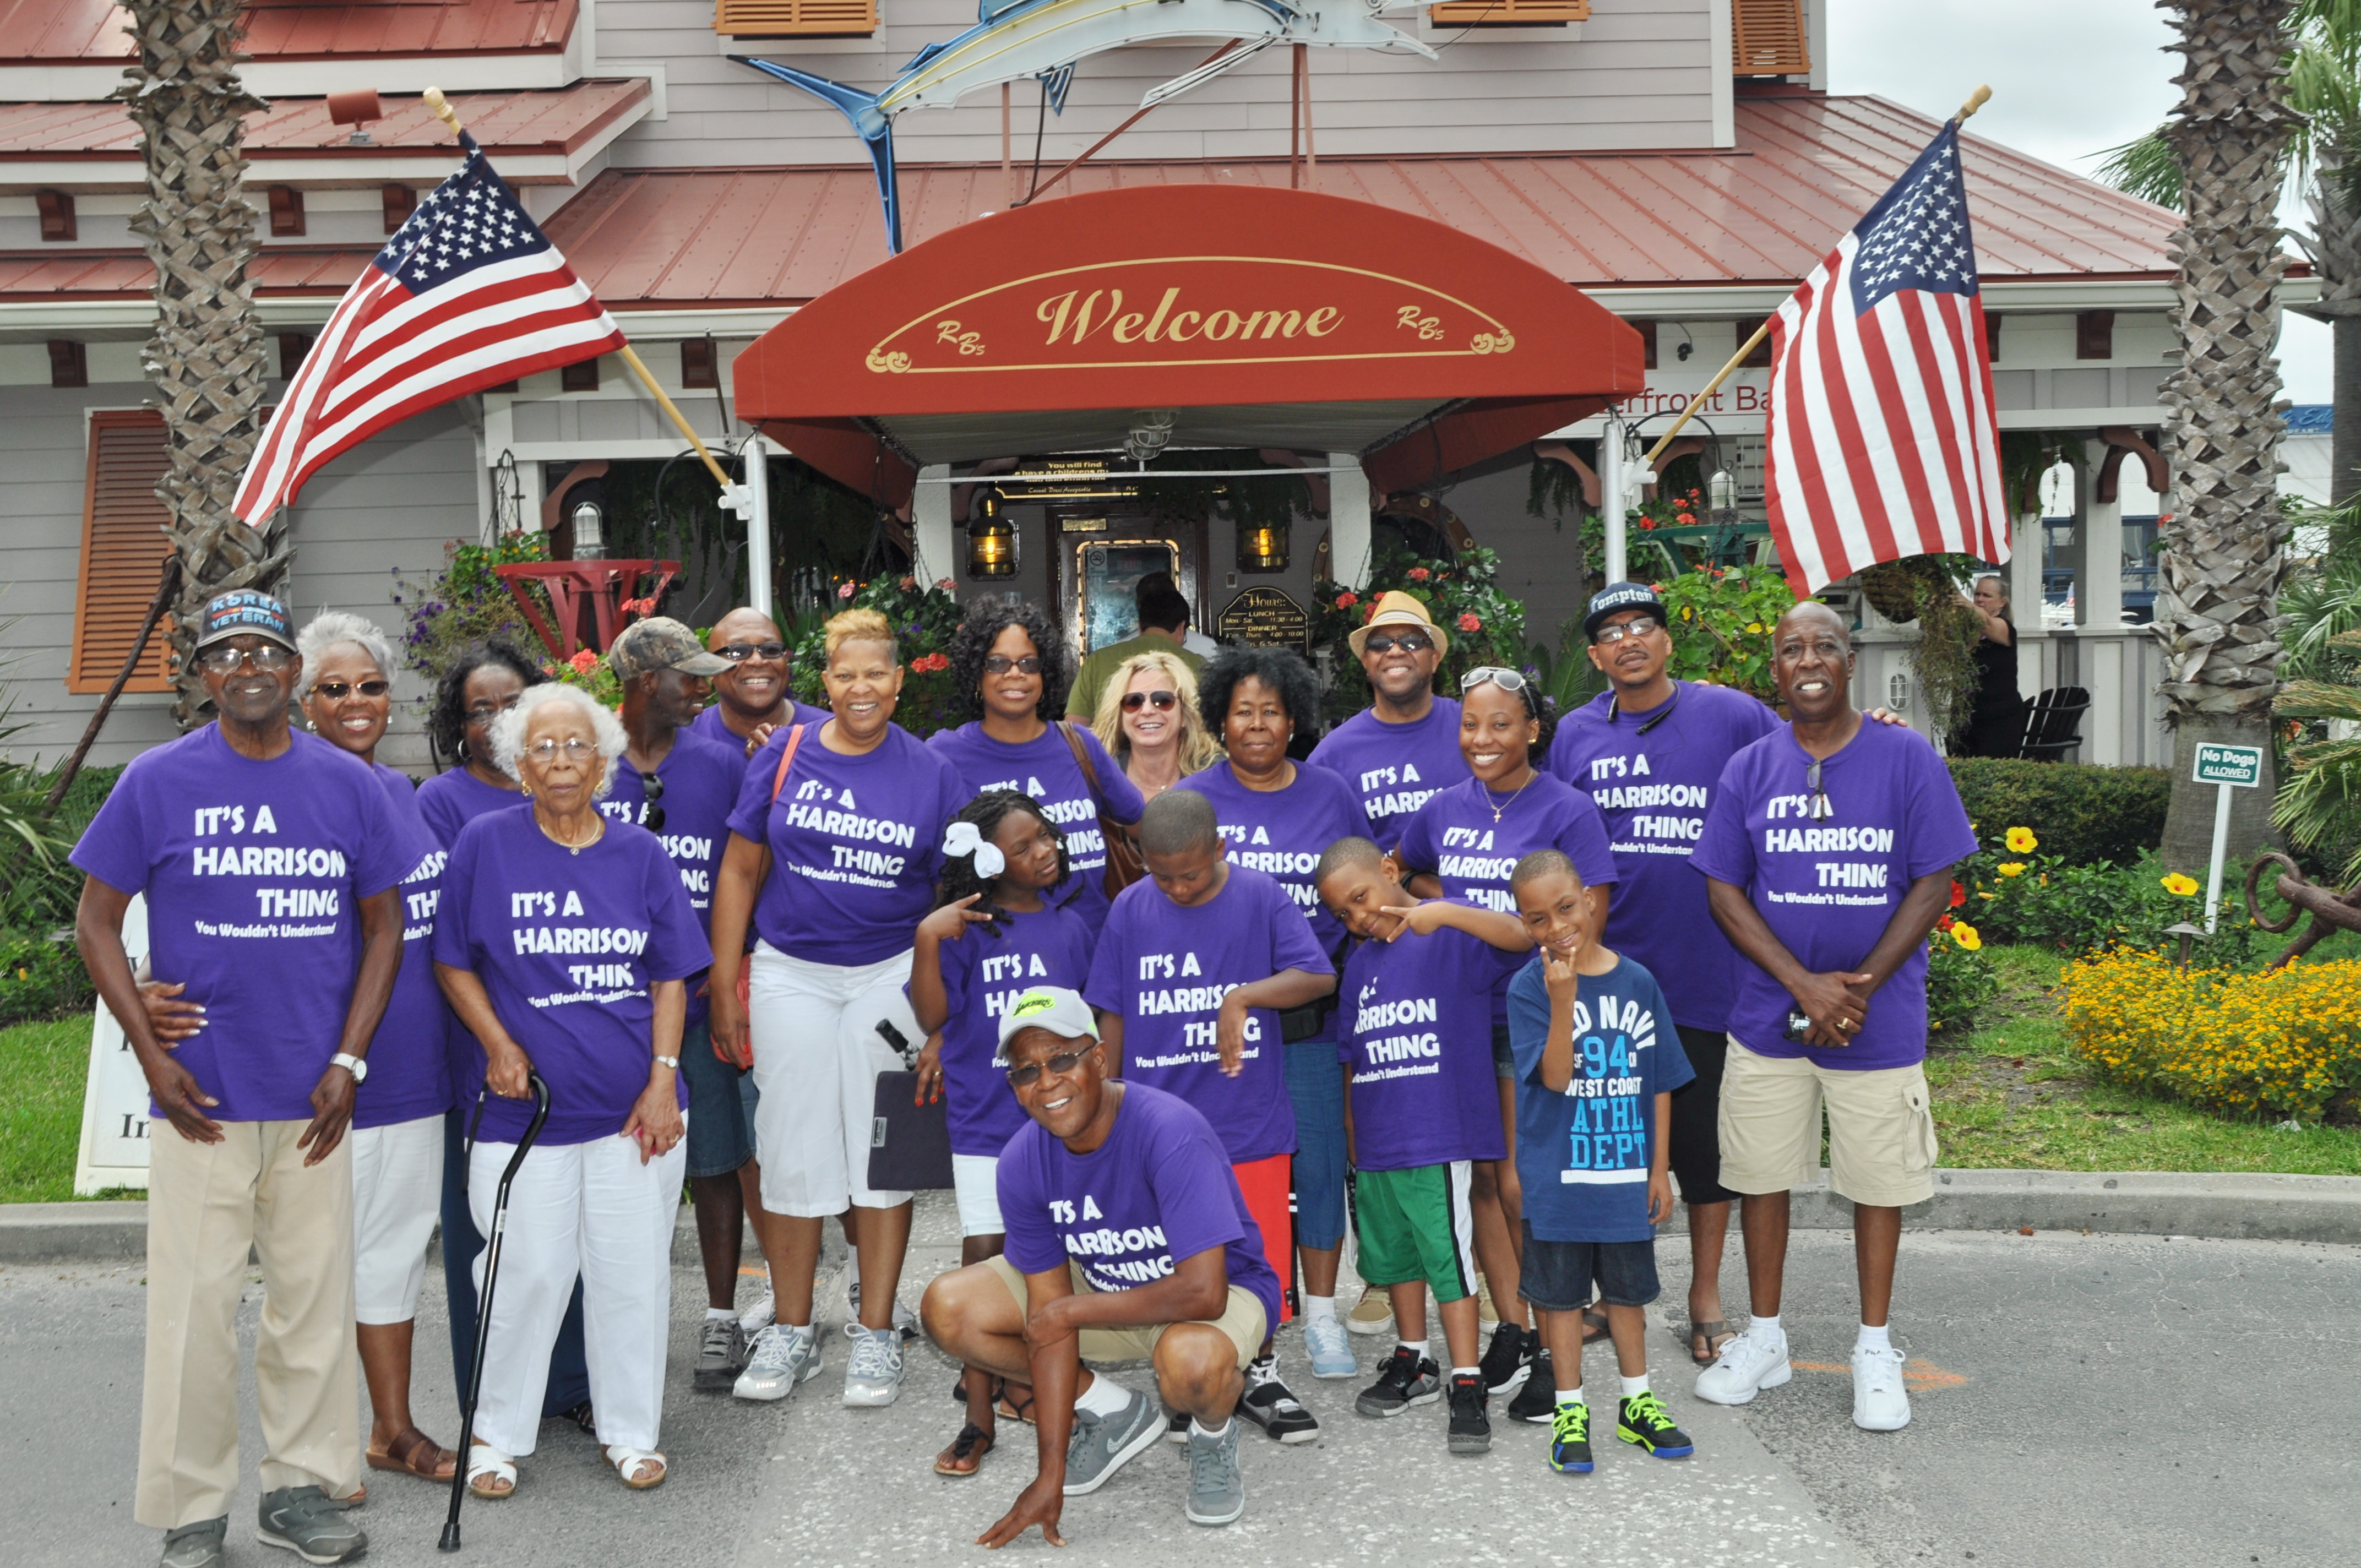 Harrison family reunion its a family affair charleston sc 2014 pronofoot35fo Image collections